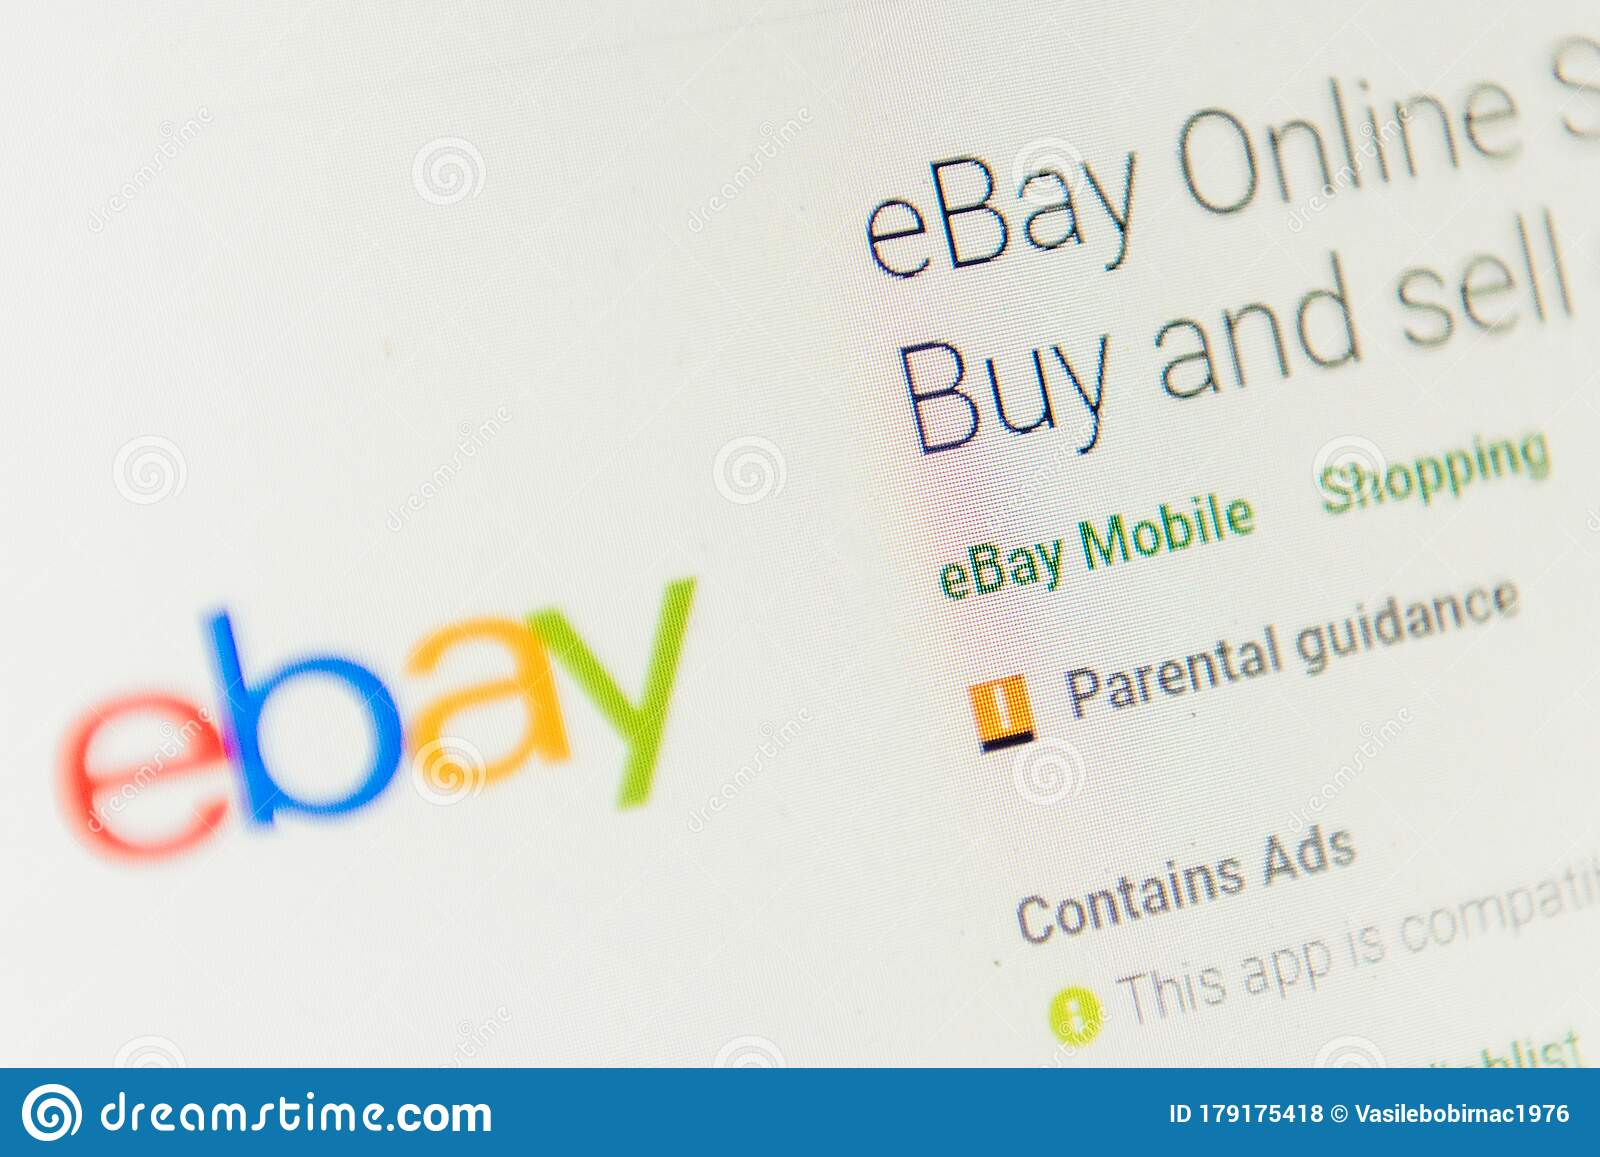 Ebay App Icon Selective Focus Editorial Stock Photo Image Of Loaded Screen 179175418